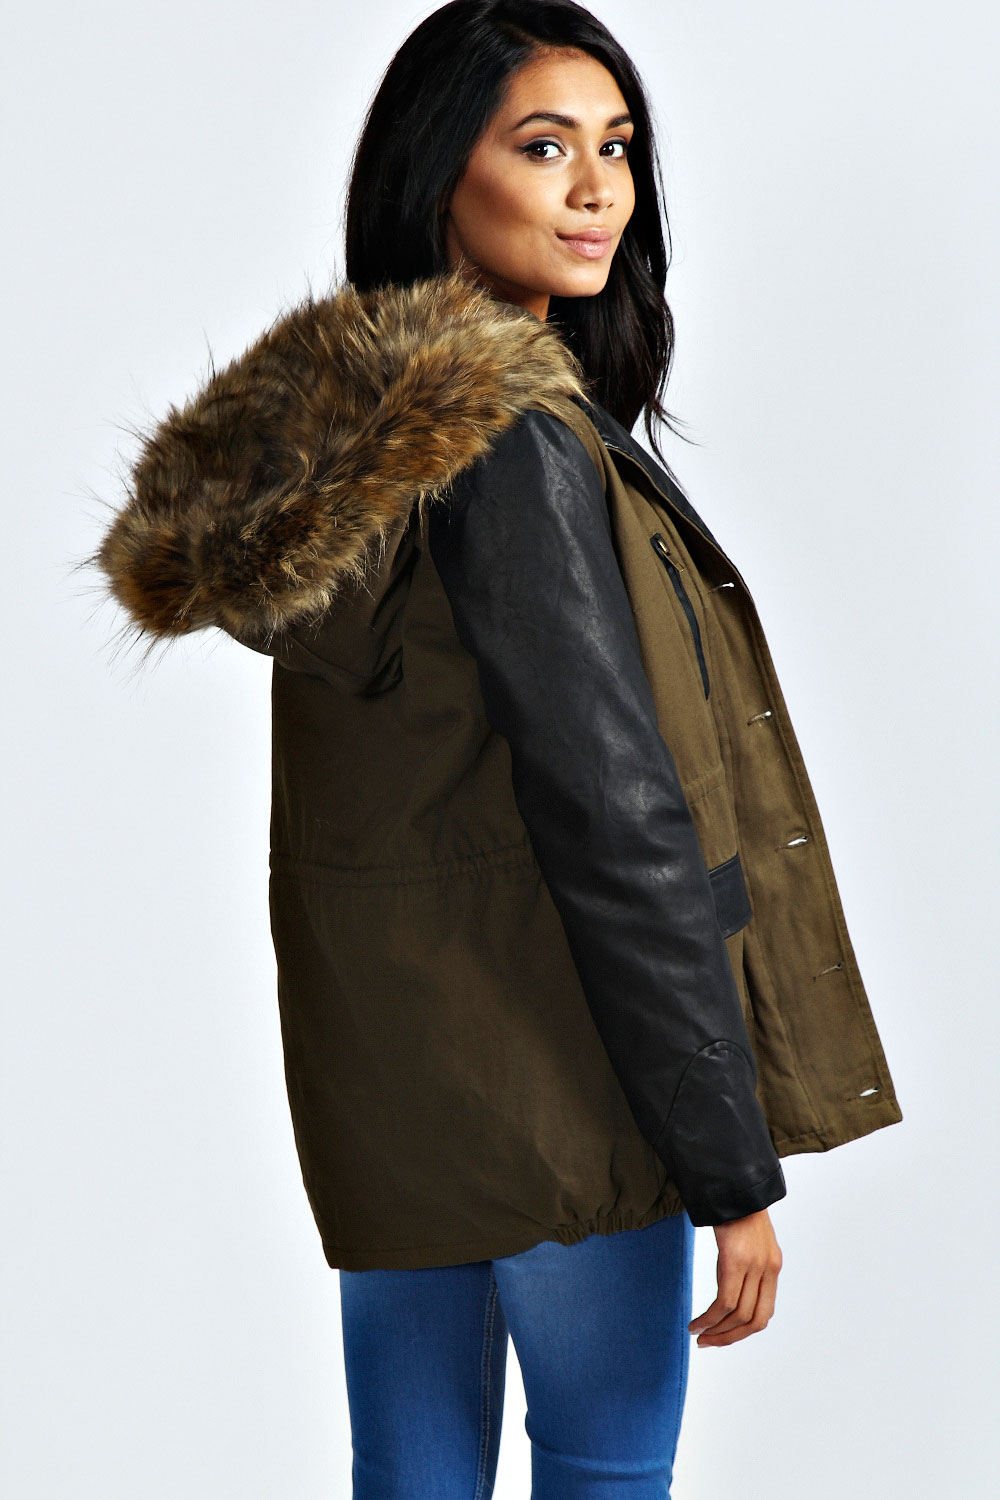 Ladies Khaki Parka Coat - Coat Nj